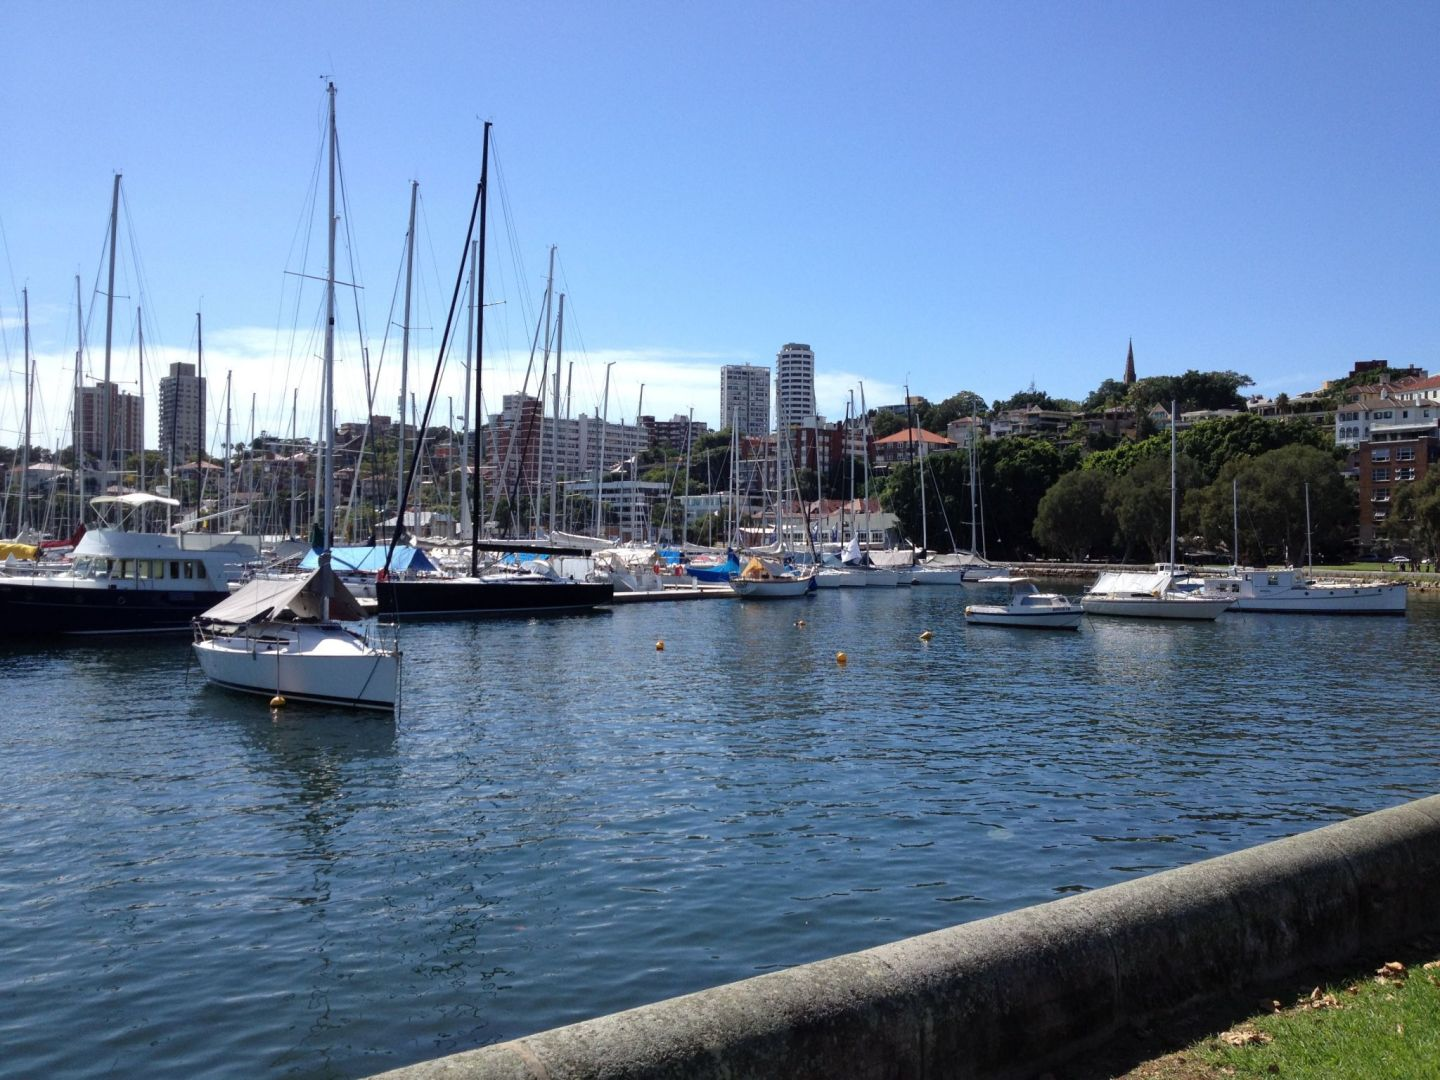 Boats at Rushcutters Bay, Sydney